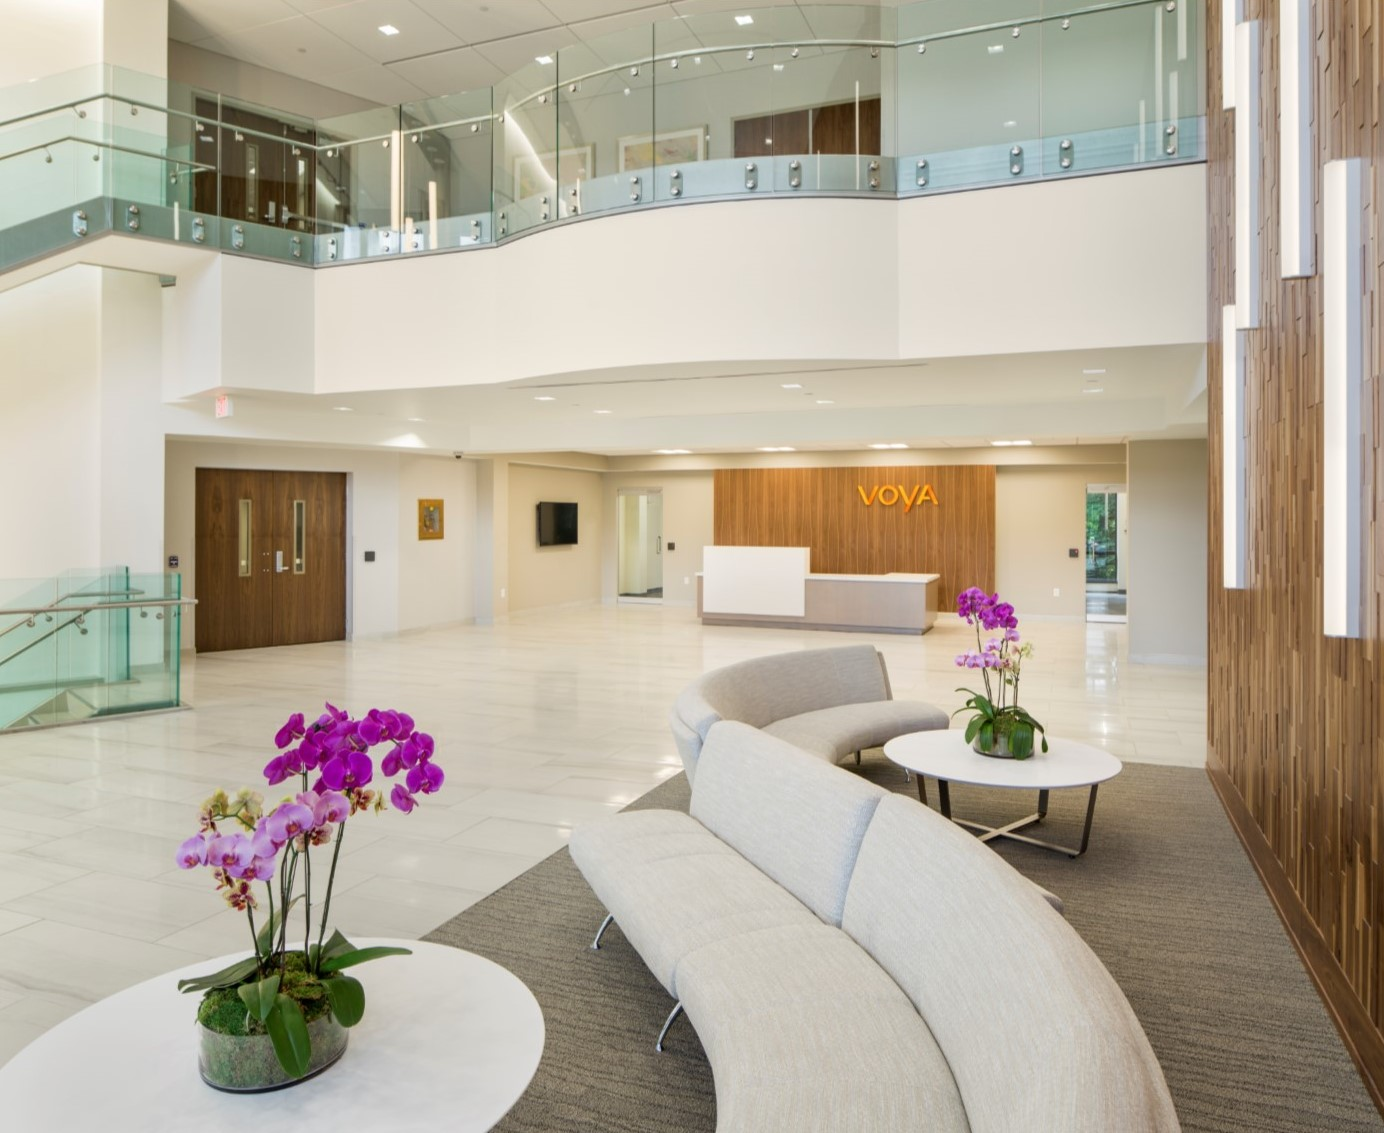 Renovated/Highly-Amenitized Office Building in West Chester Could Be Your Company's Next Headquarters